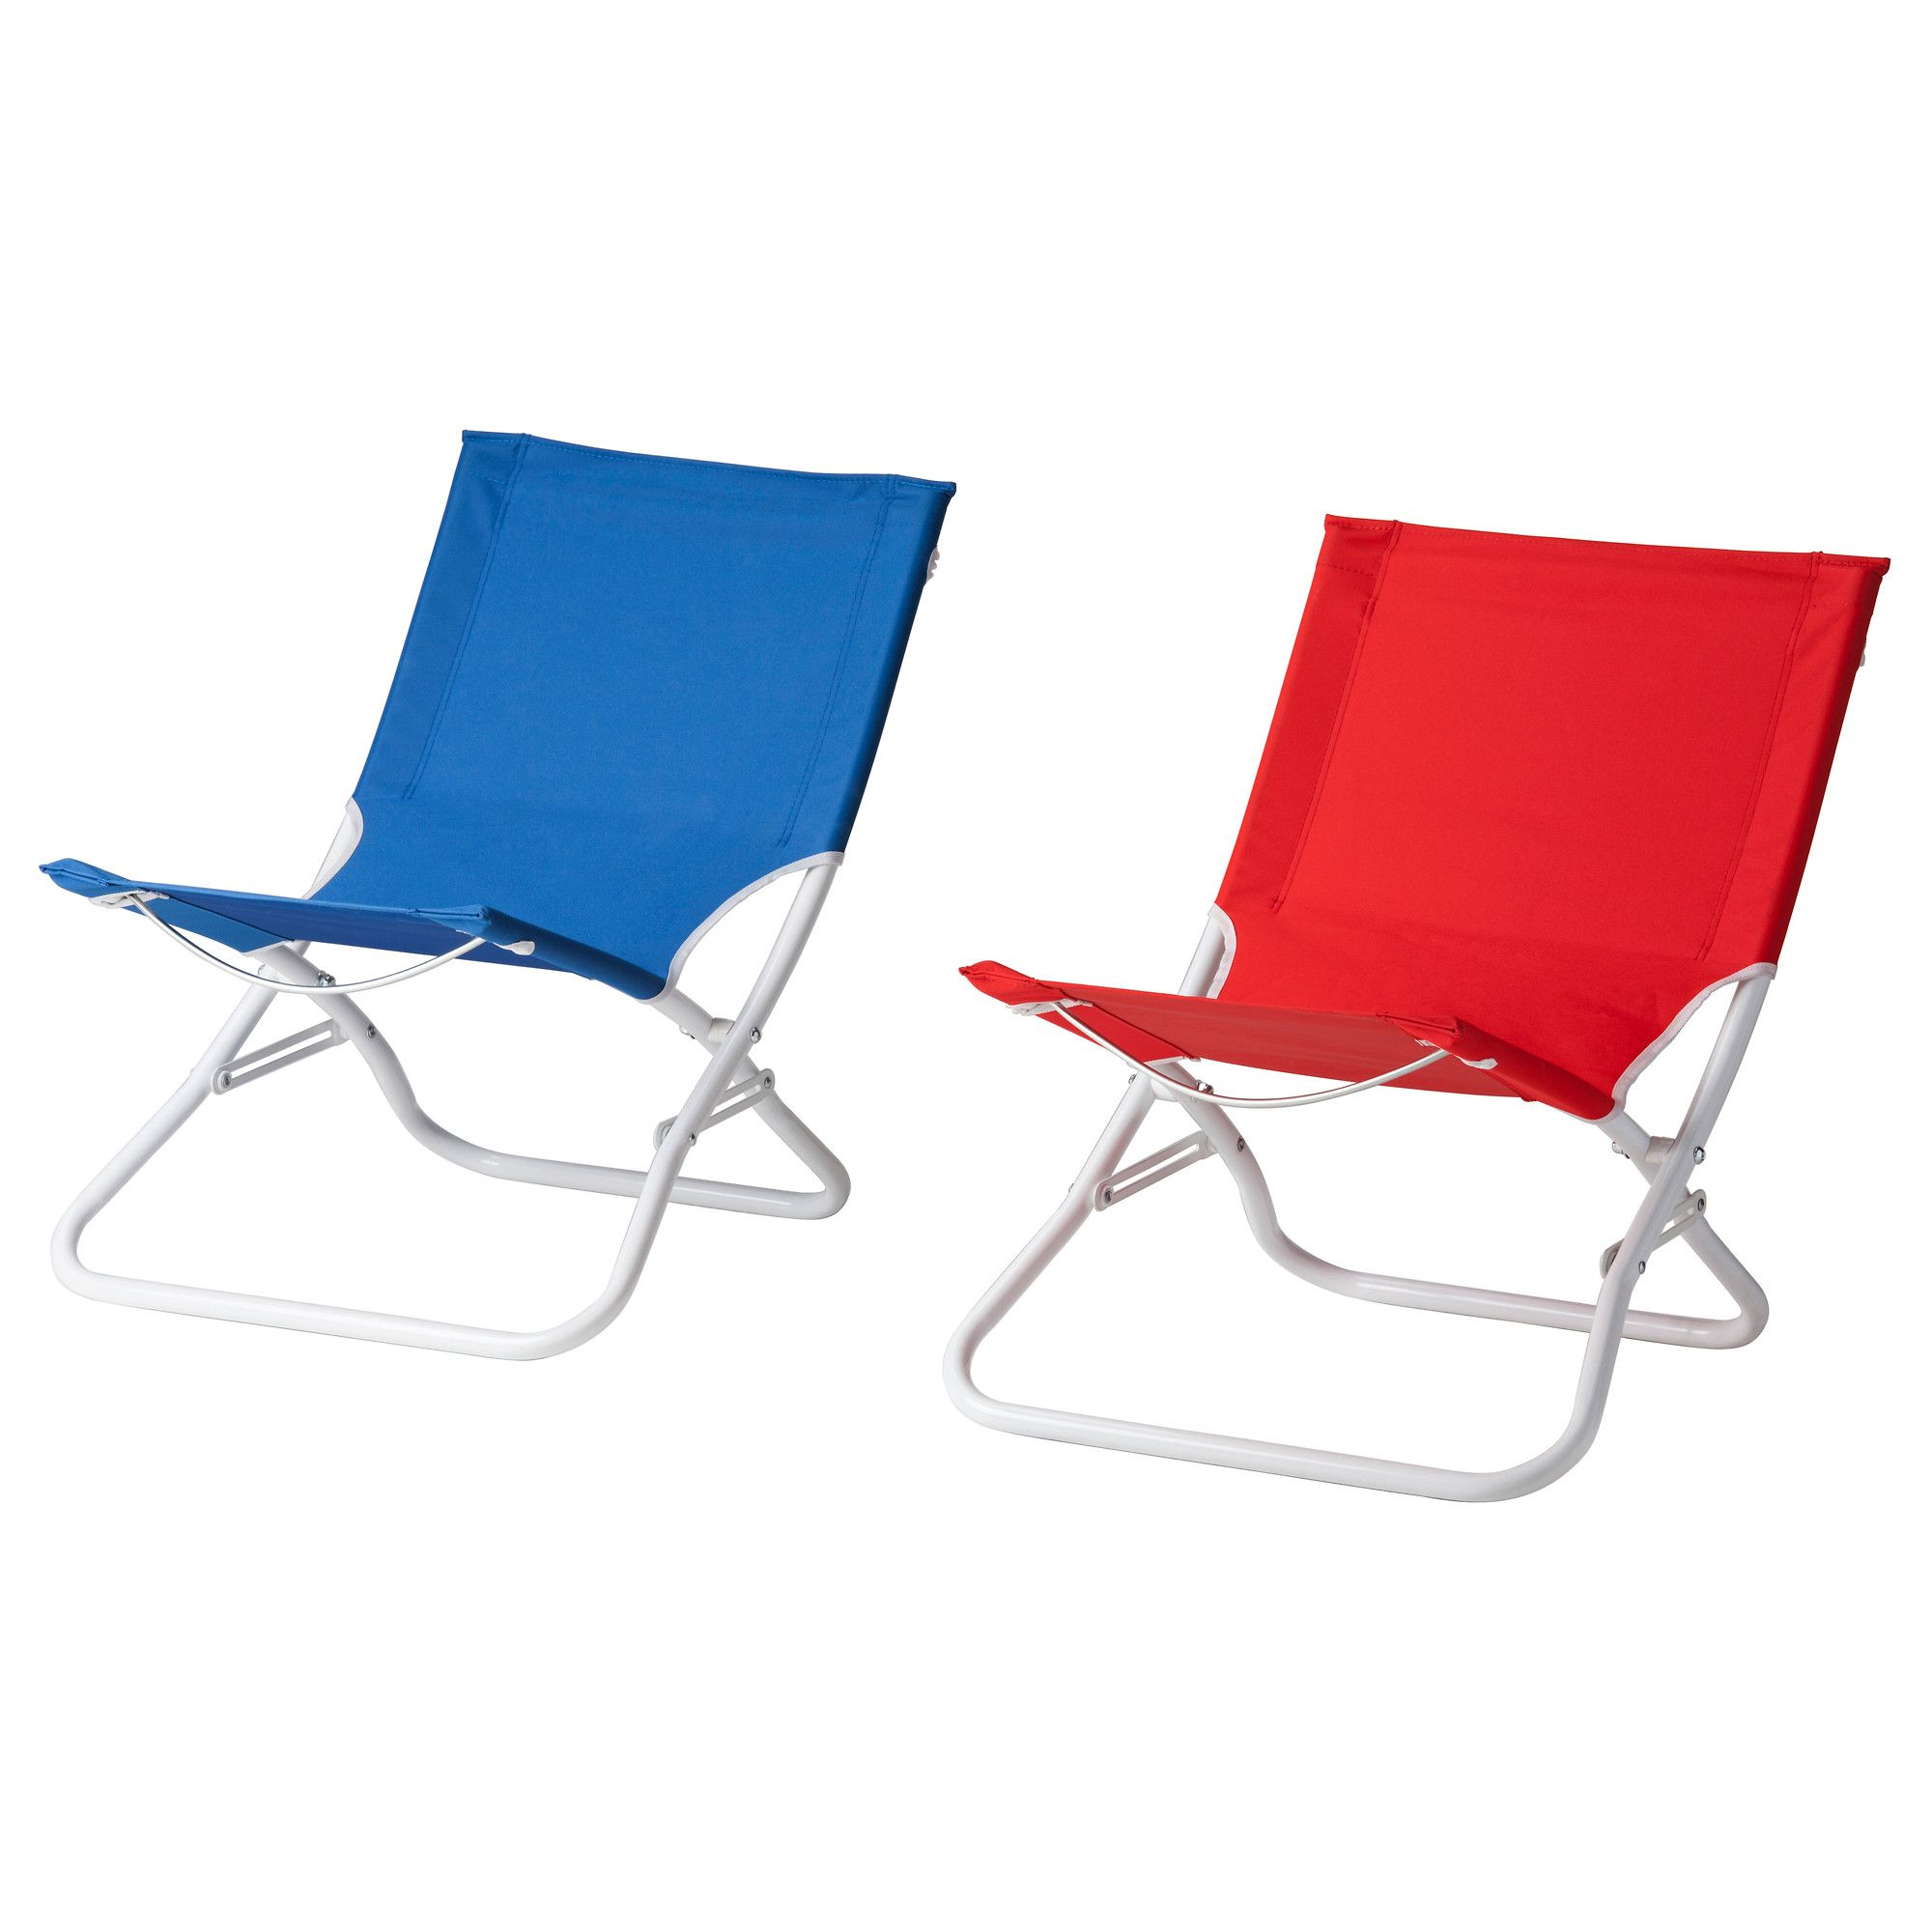 H…M– Beach chair IKEA is but as of it was out of stock in all east coast stores